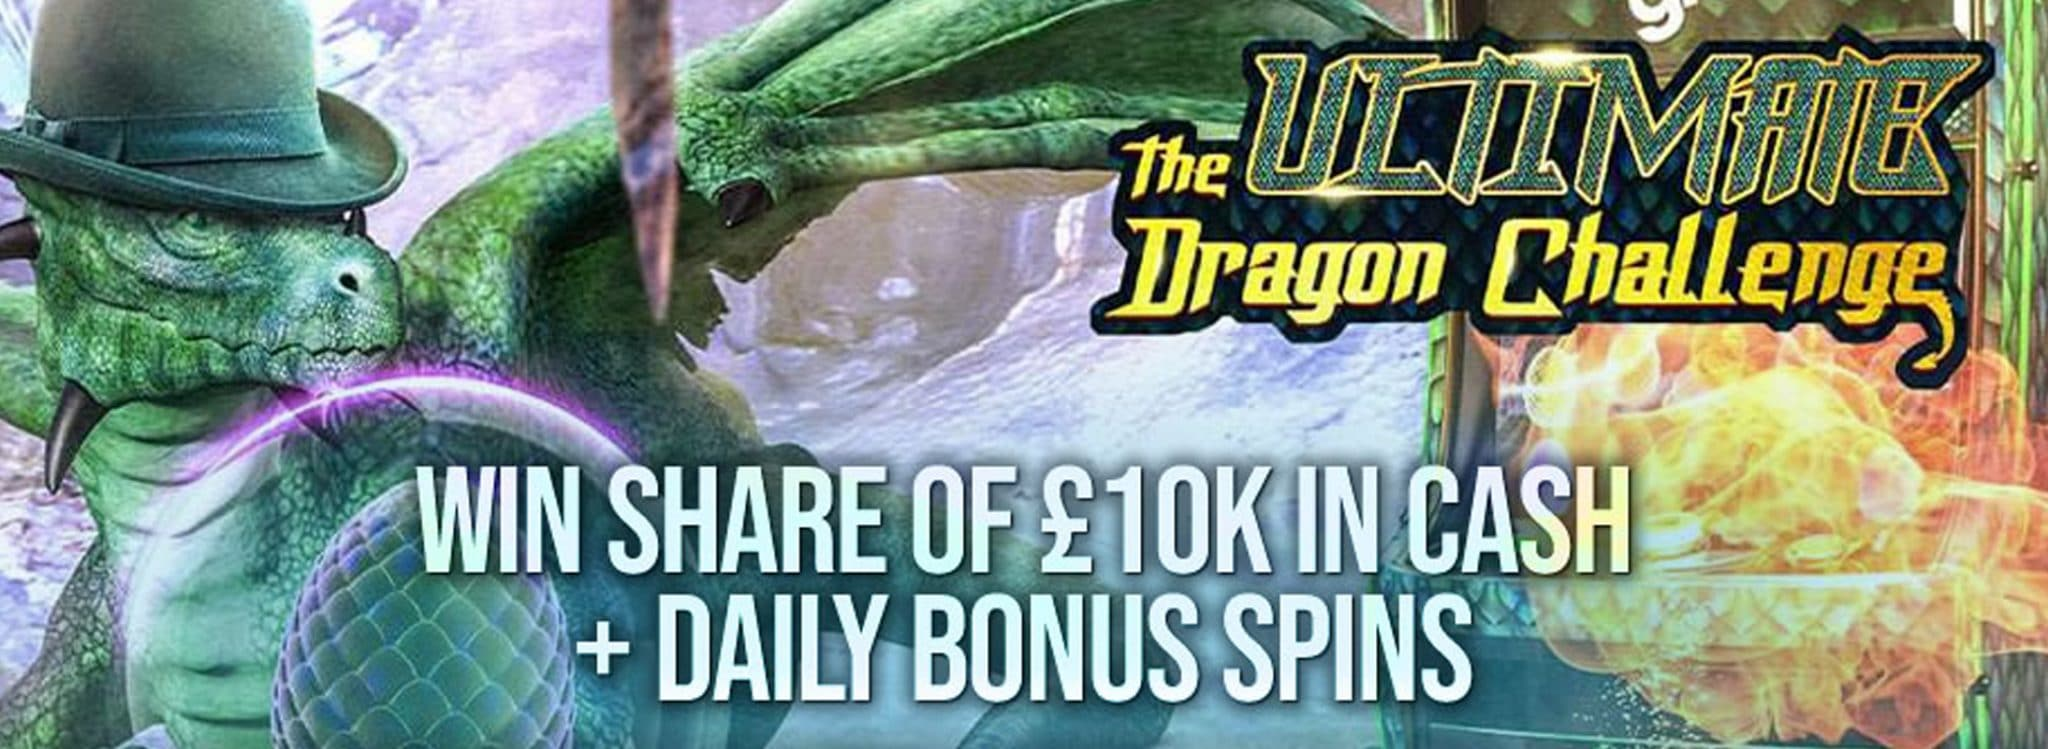 Unlock Spins And Cash Wins With The Mr Green Ultimate Dragon Challenge element01 - CasinoTop